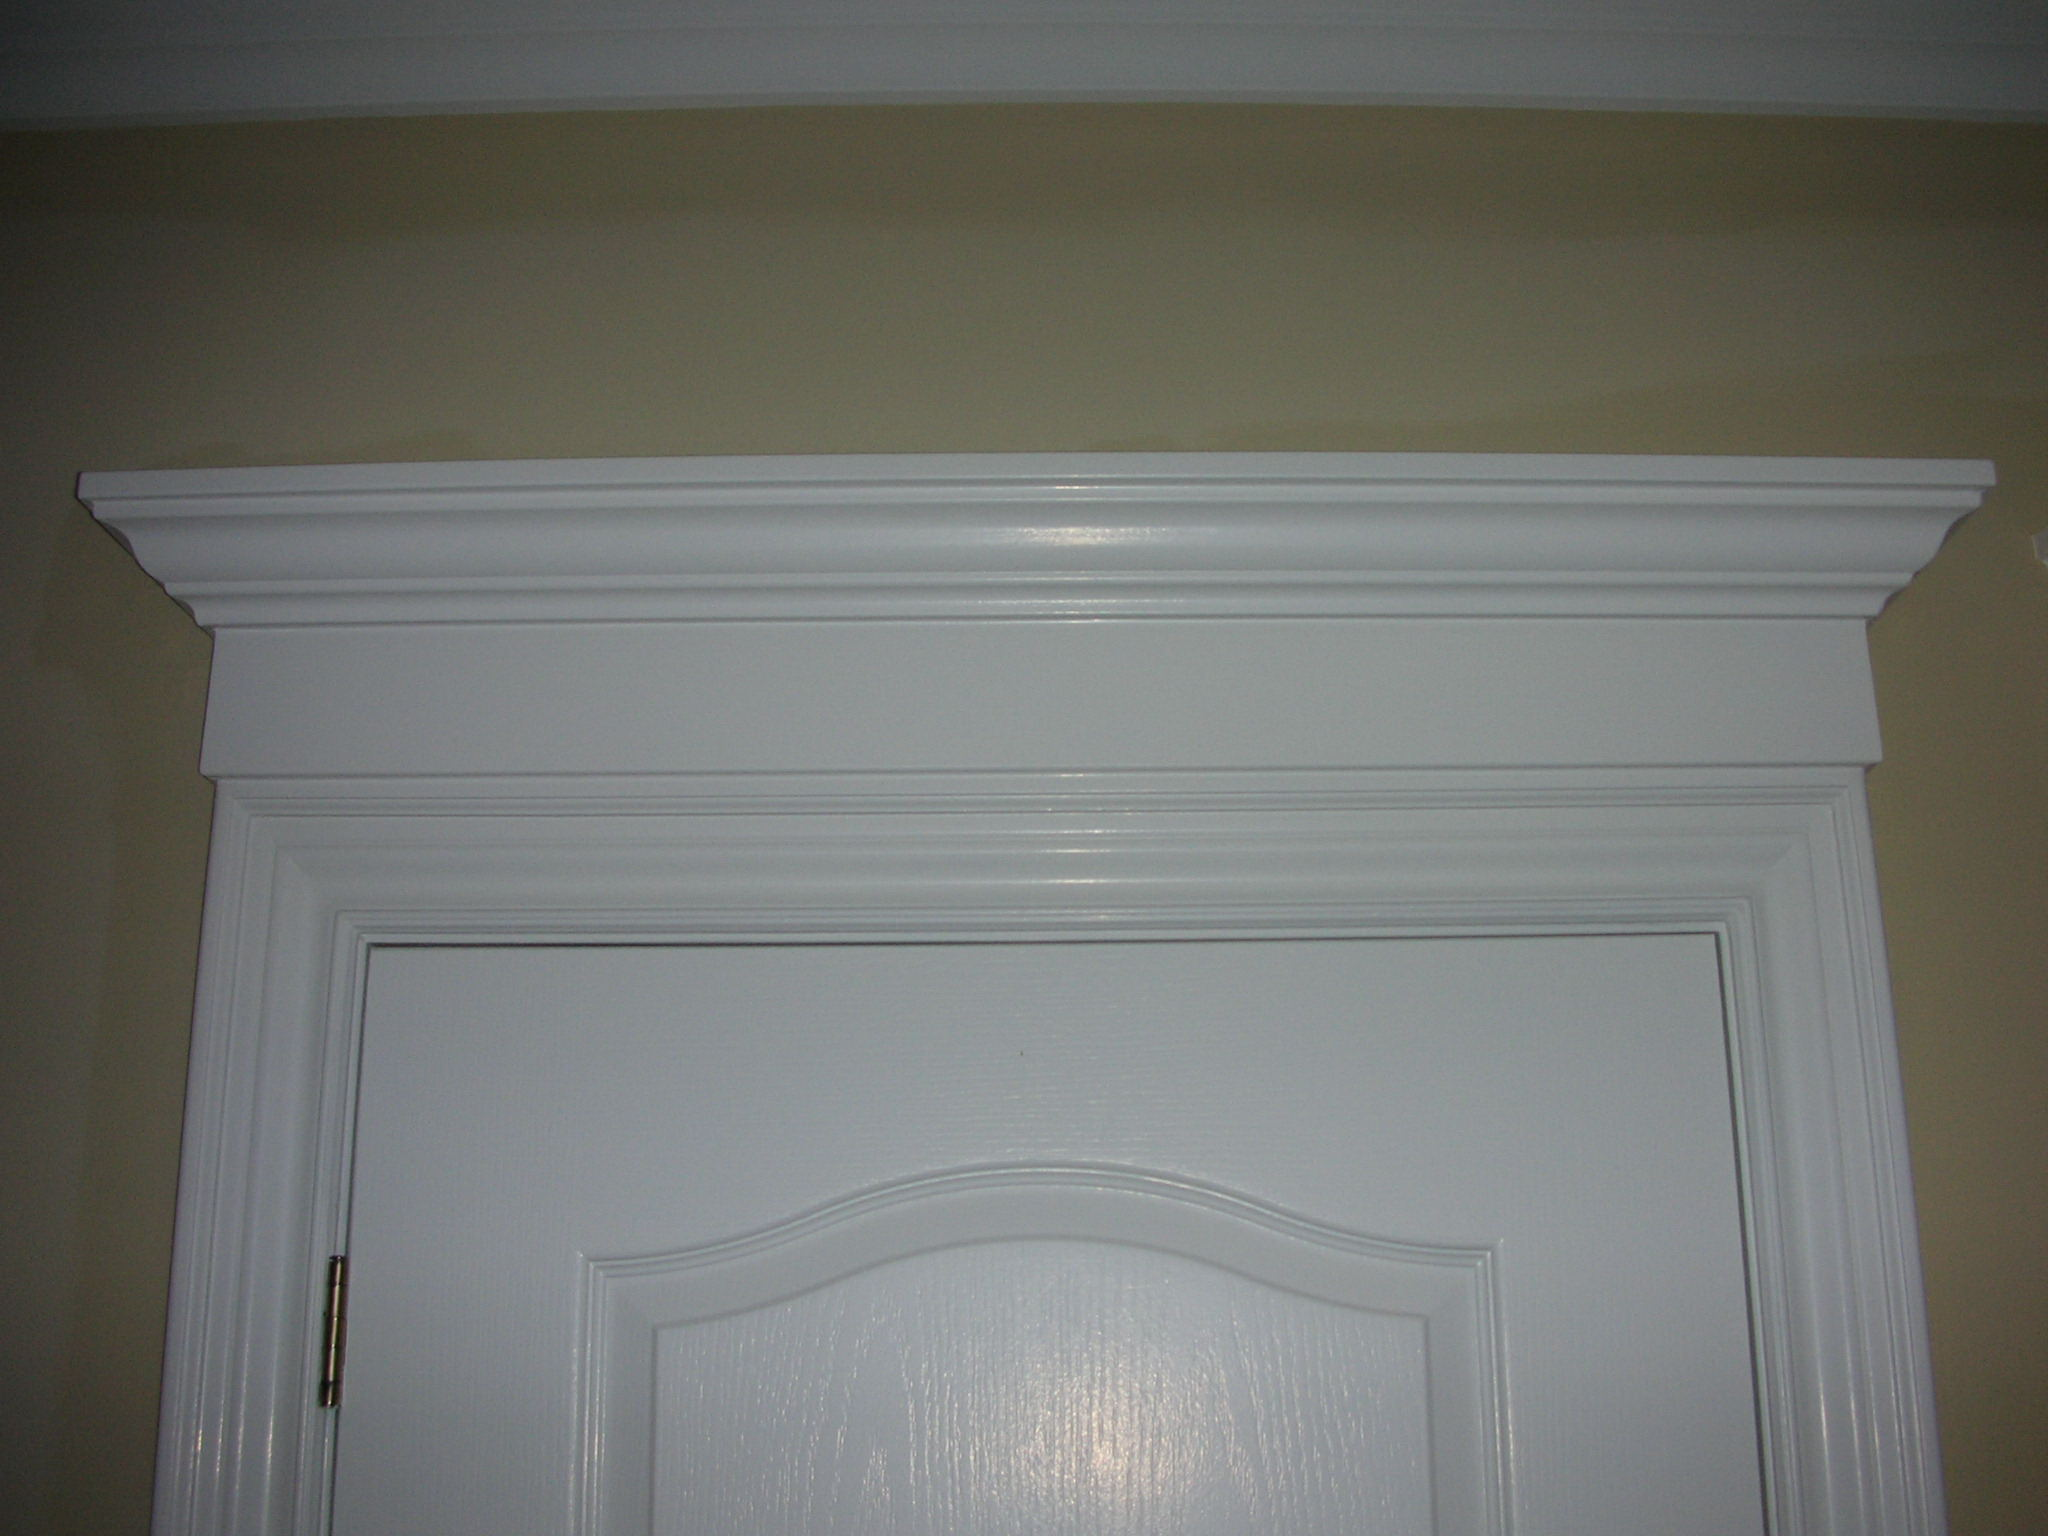 Le Meilleur Door Trim Bbg Carpentry Inc Ce Mois Ci